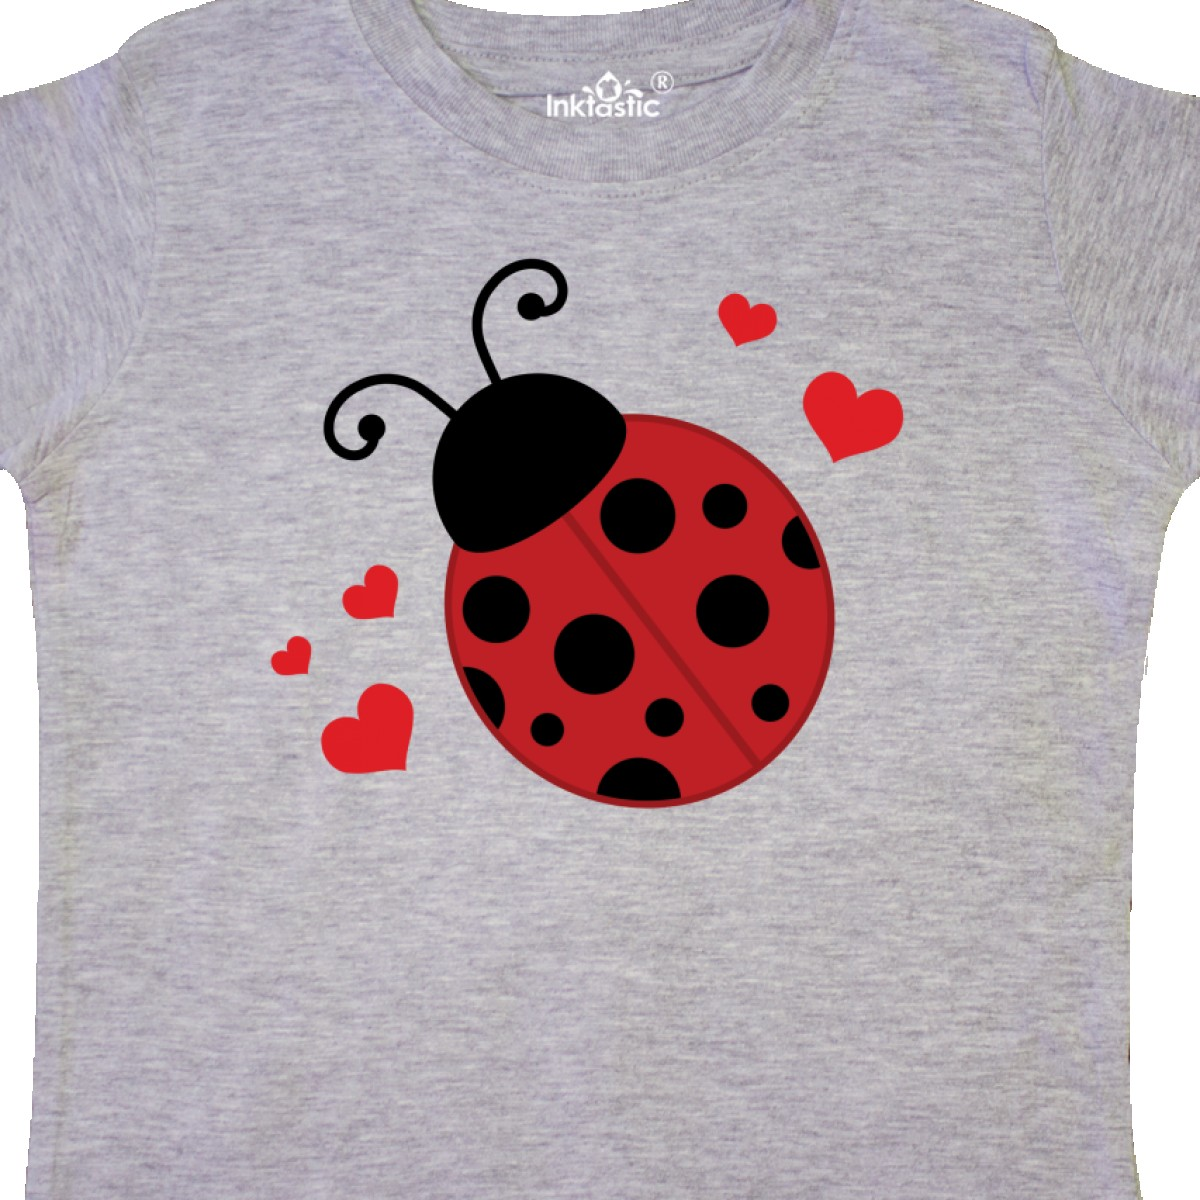 Inktastic-Lady-Bug-And-Hearts-Toddler-T-Shirt-Ladybug-Lover-Bugs-Insects-Cute thumbnail 4